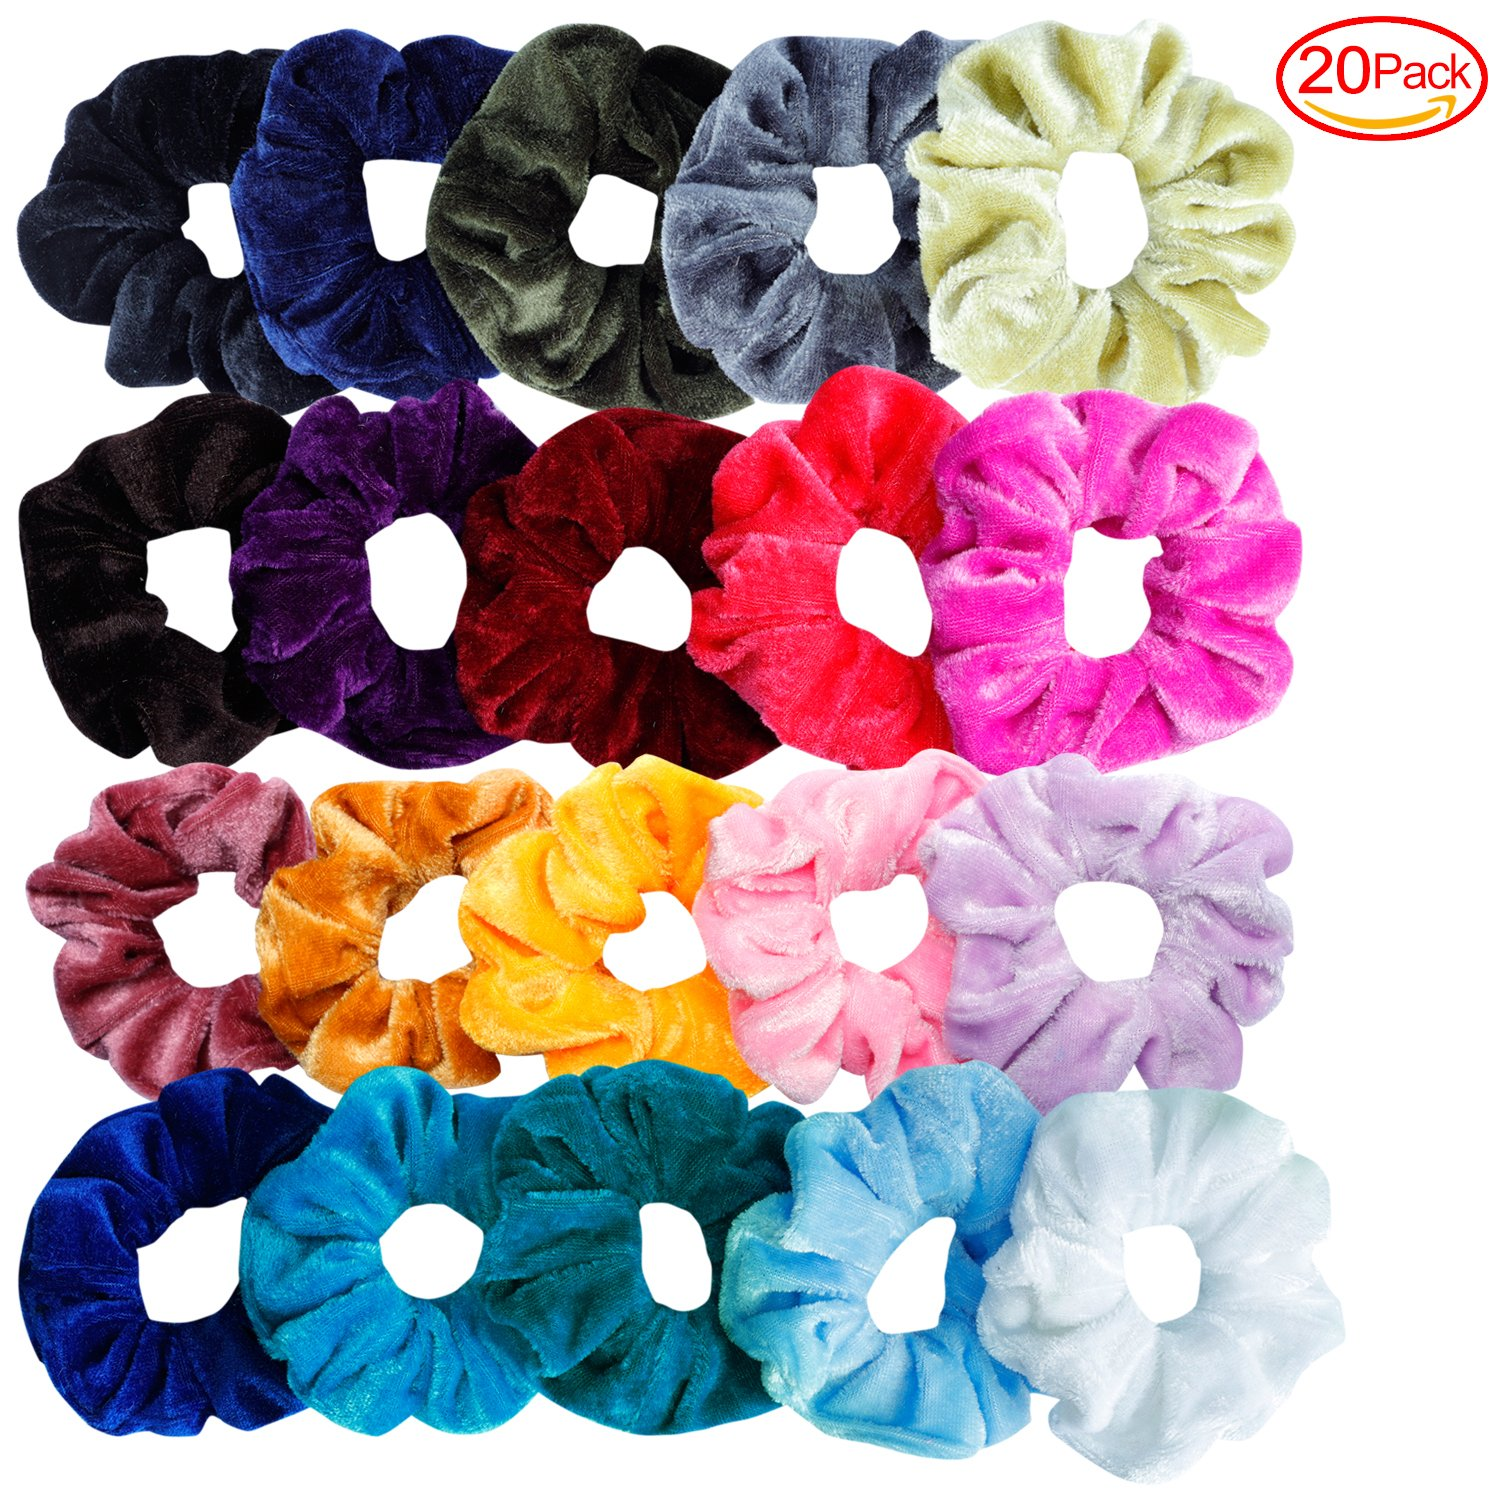 Mandydov 20 Pcs Hair Scrunchies Velvet Elastic Hair Bands Scrunchy Hair Ties Ropes Scrunchie for Women or Girls Hair Accessories - 20 Assorted Colors Scrunchies. by Mandydov (Image #2)